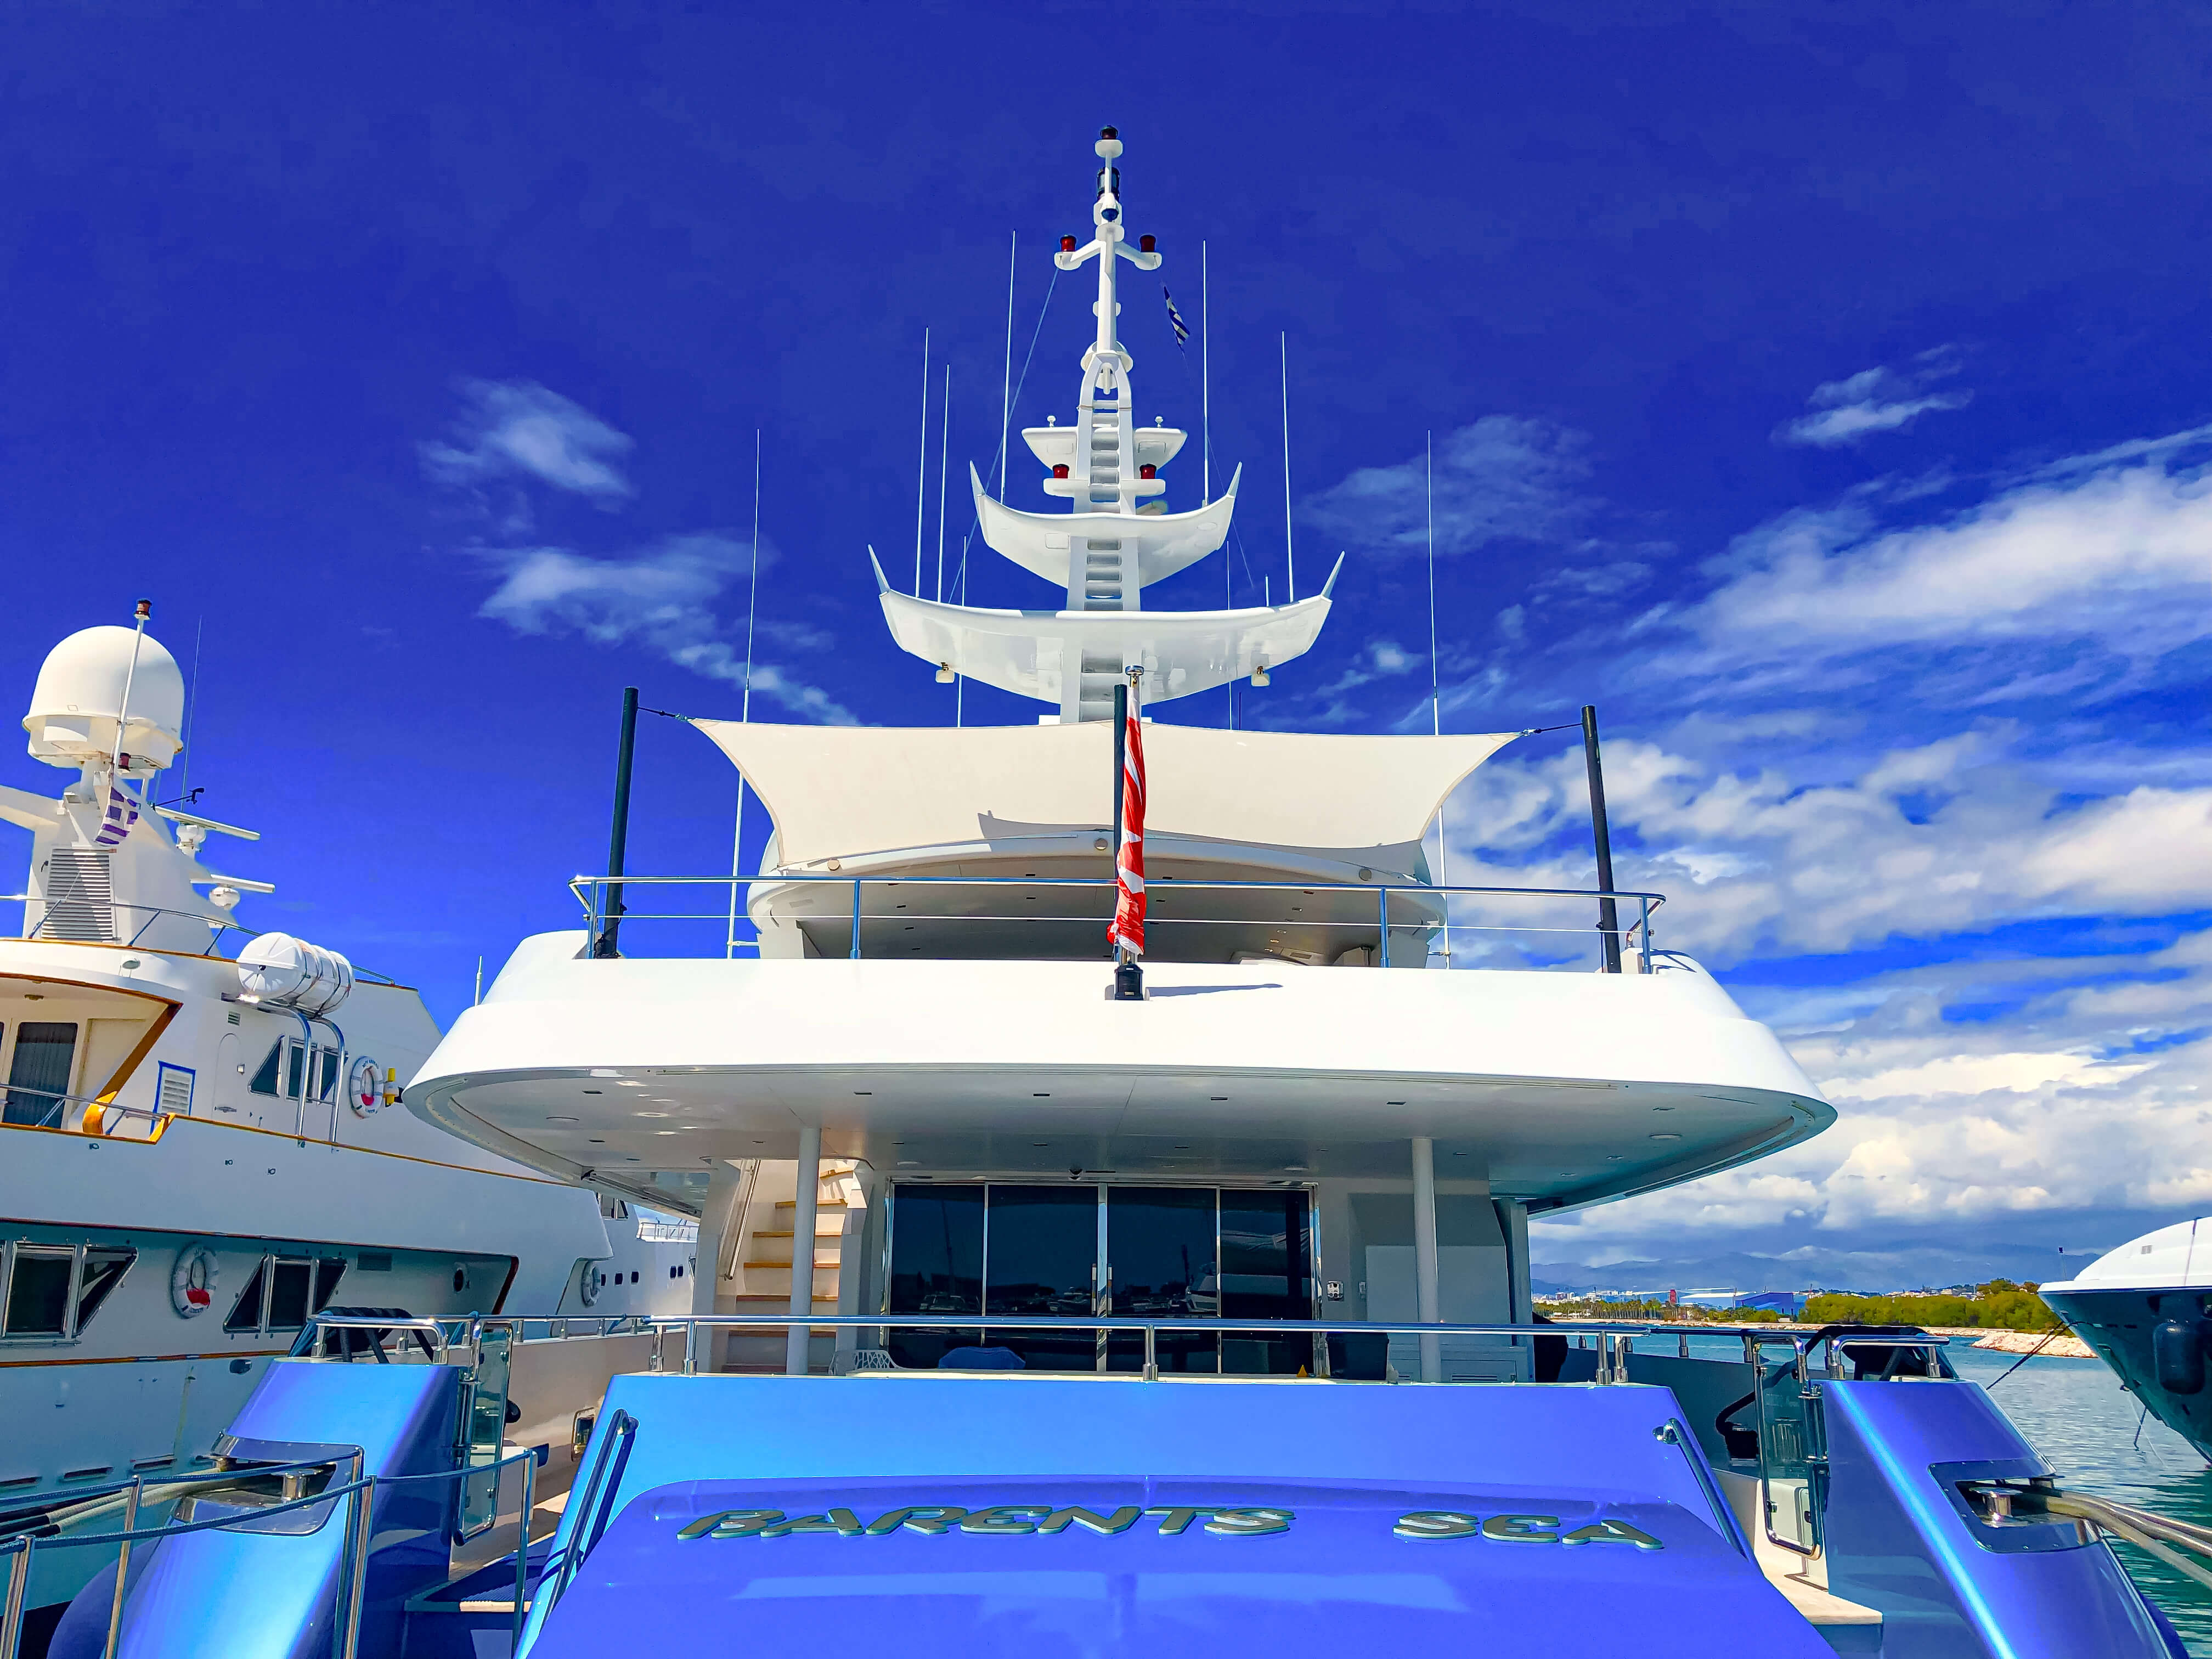 Yachting Canopies